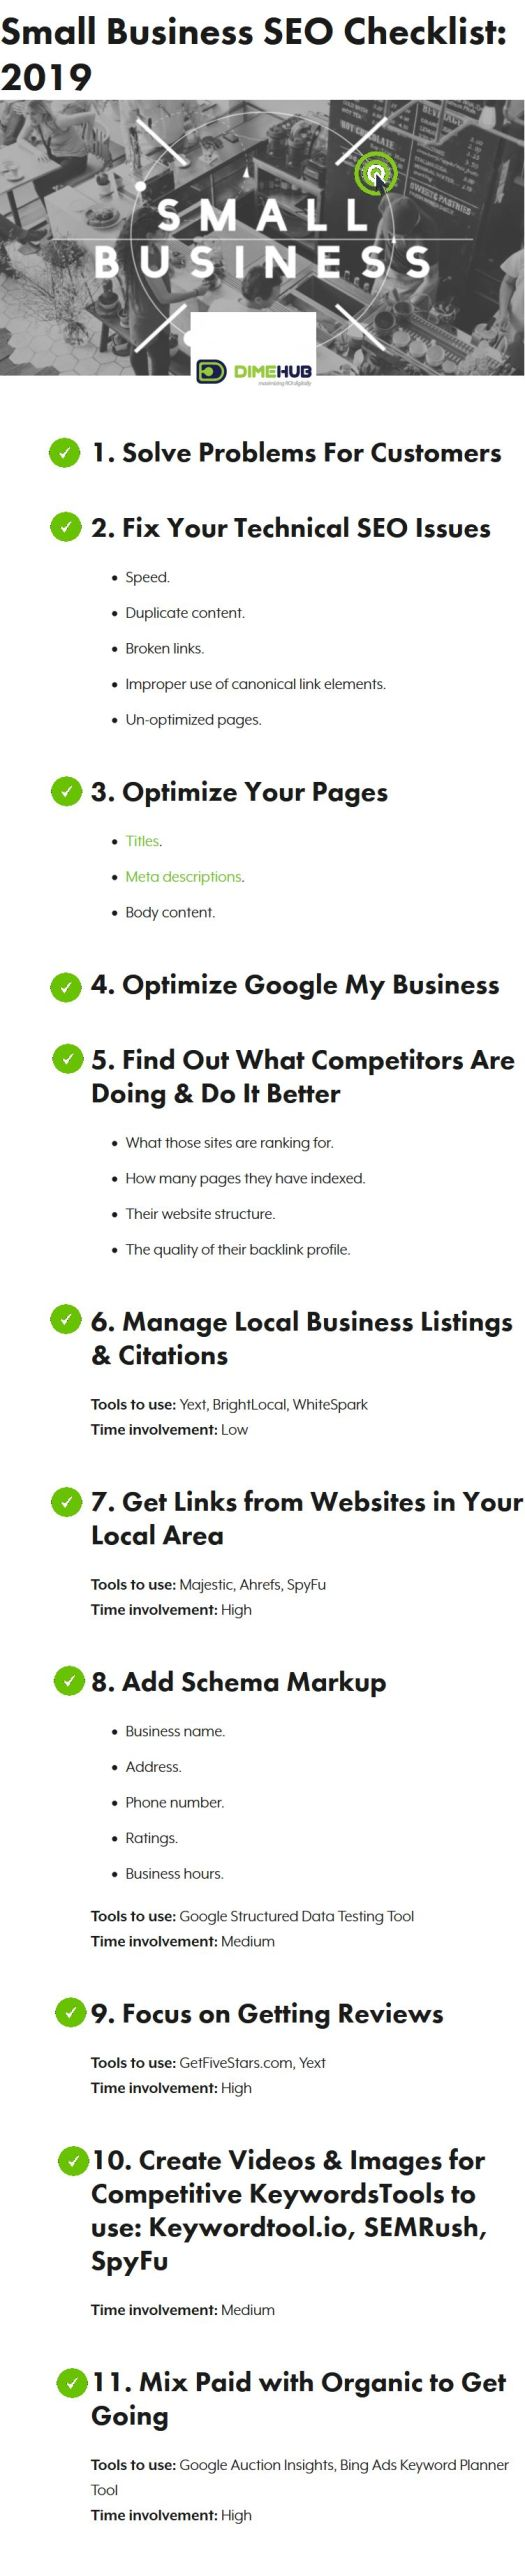 Small Business Kenya SEO Checklist_improve-rankings_2019